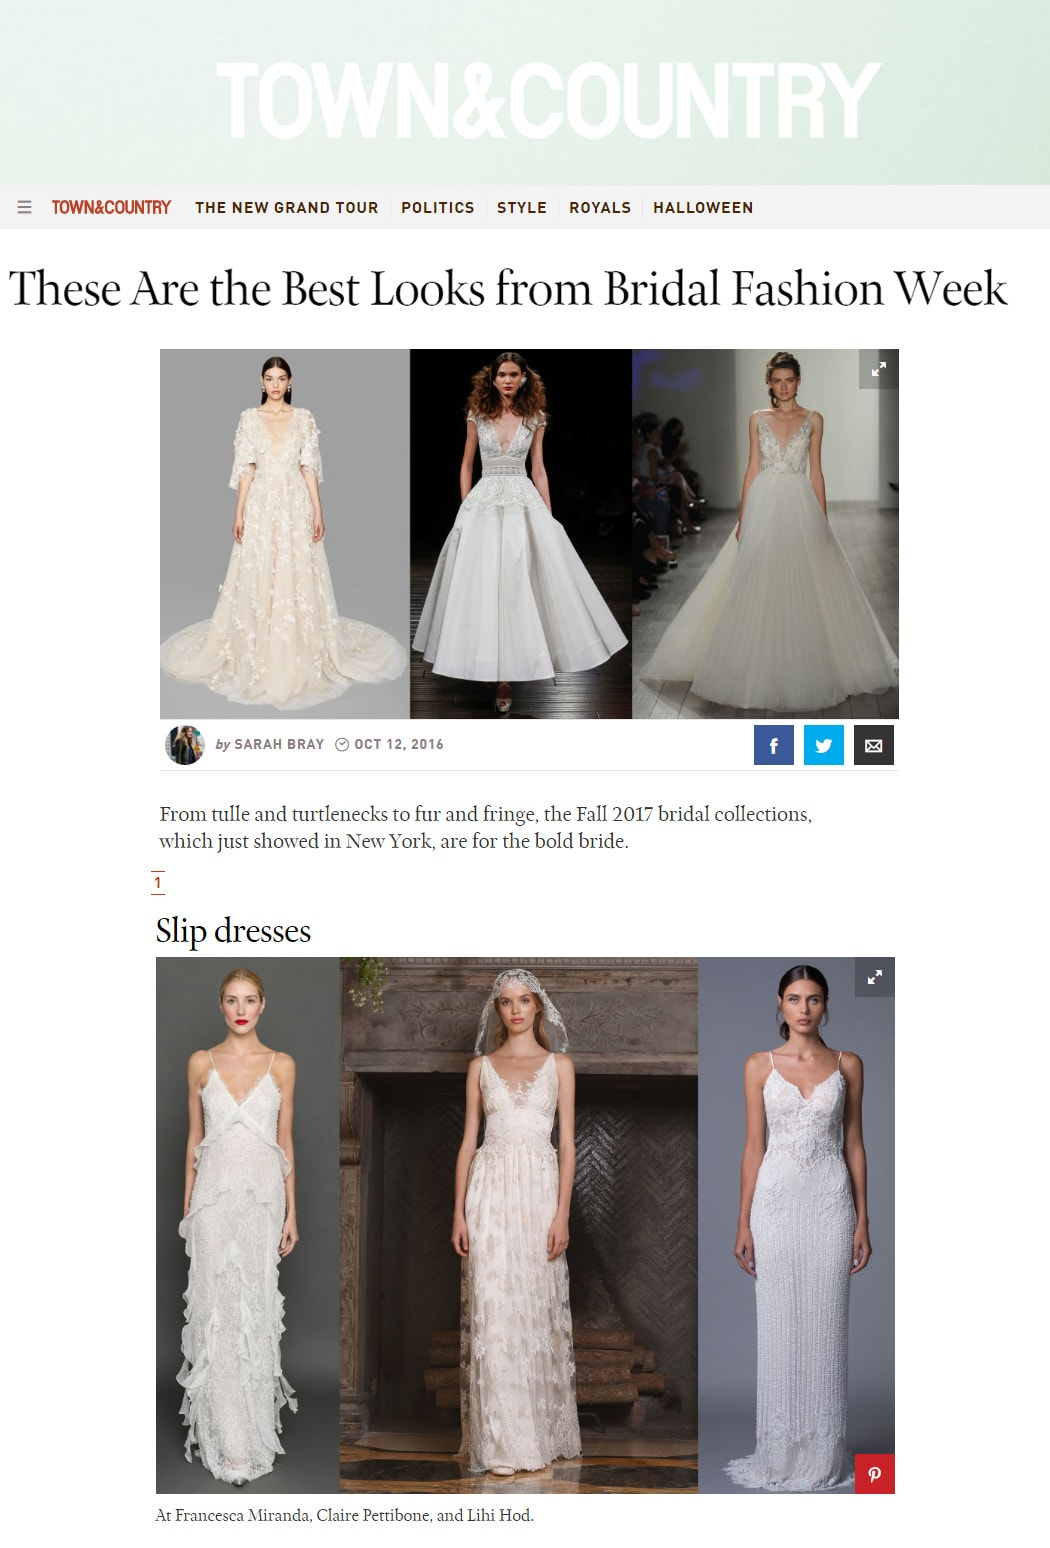 Town & Country: These Are the Best Looks from Bridal Fashion Week